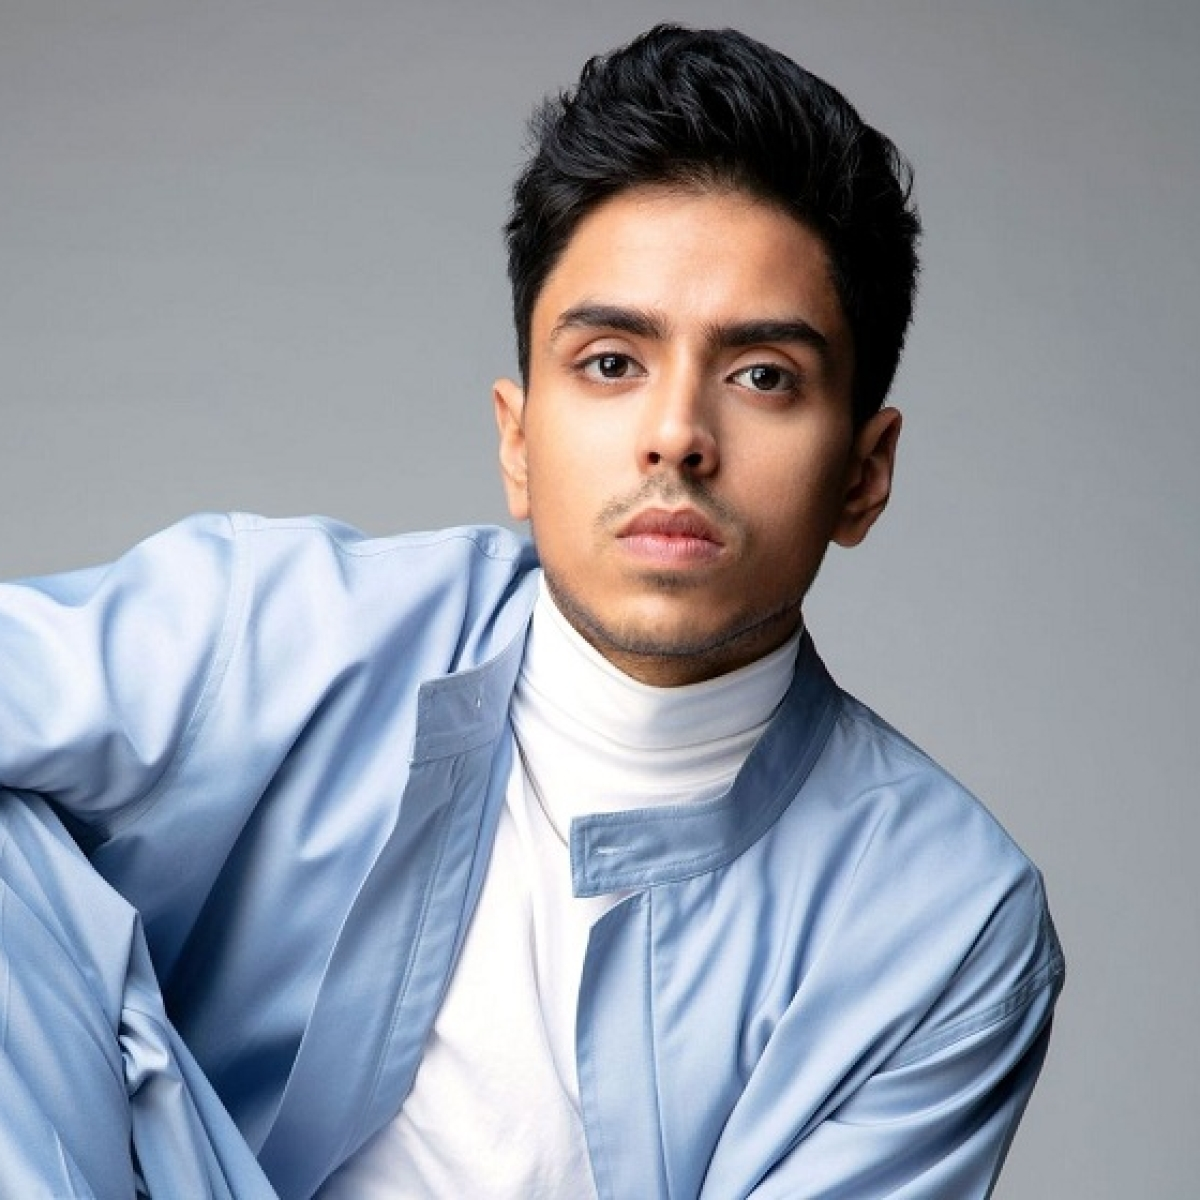 'The White Tiger' actor Adarsh Gourav gets candid about the movie, his BAFTA nomination, and more